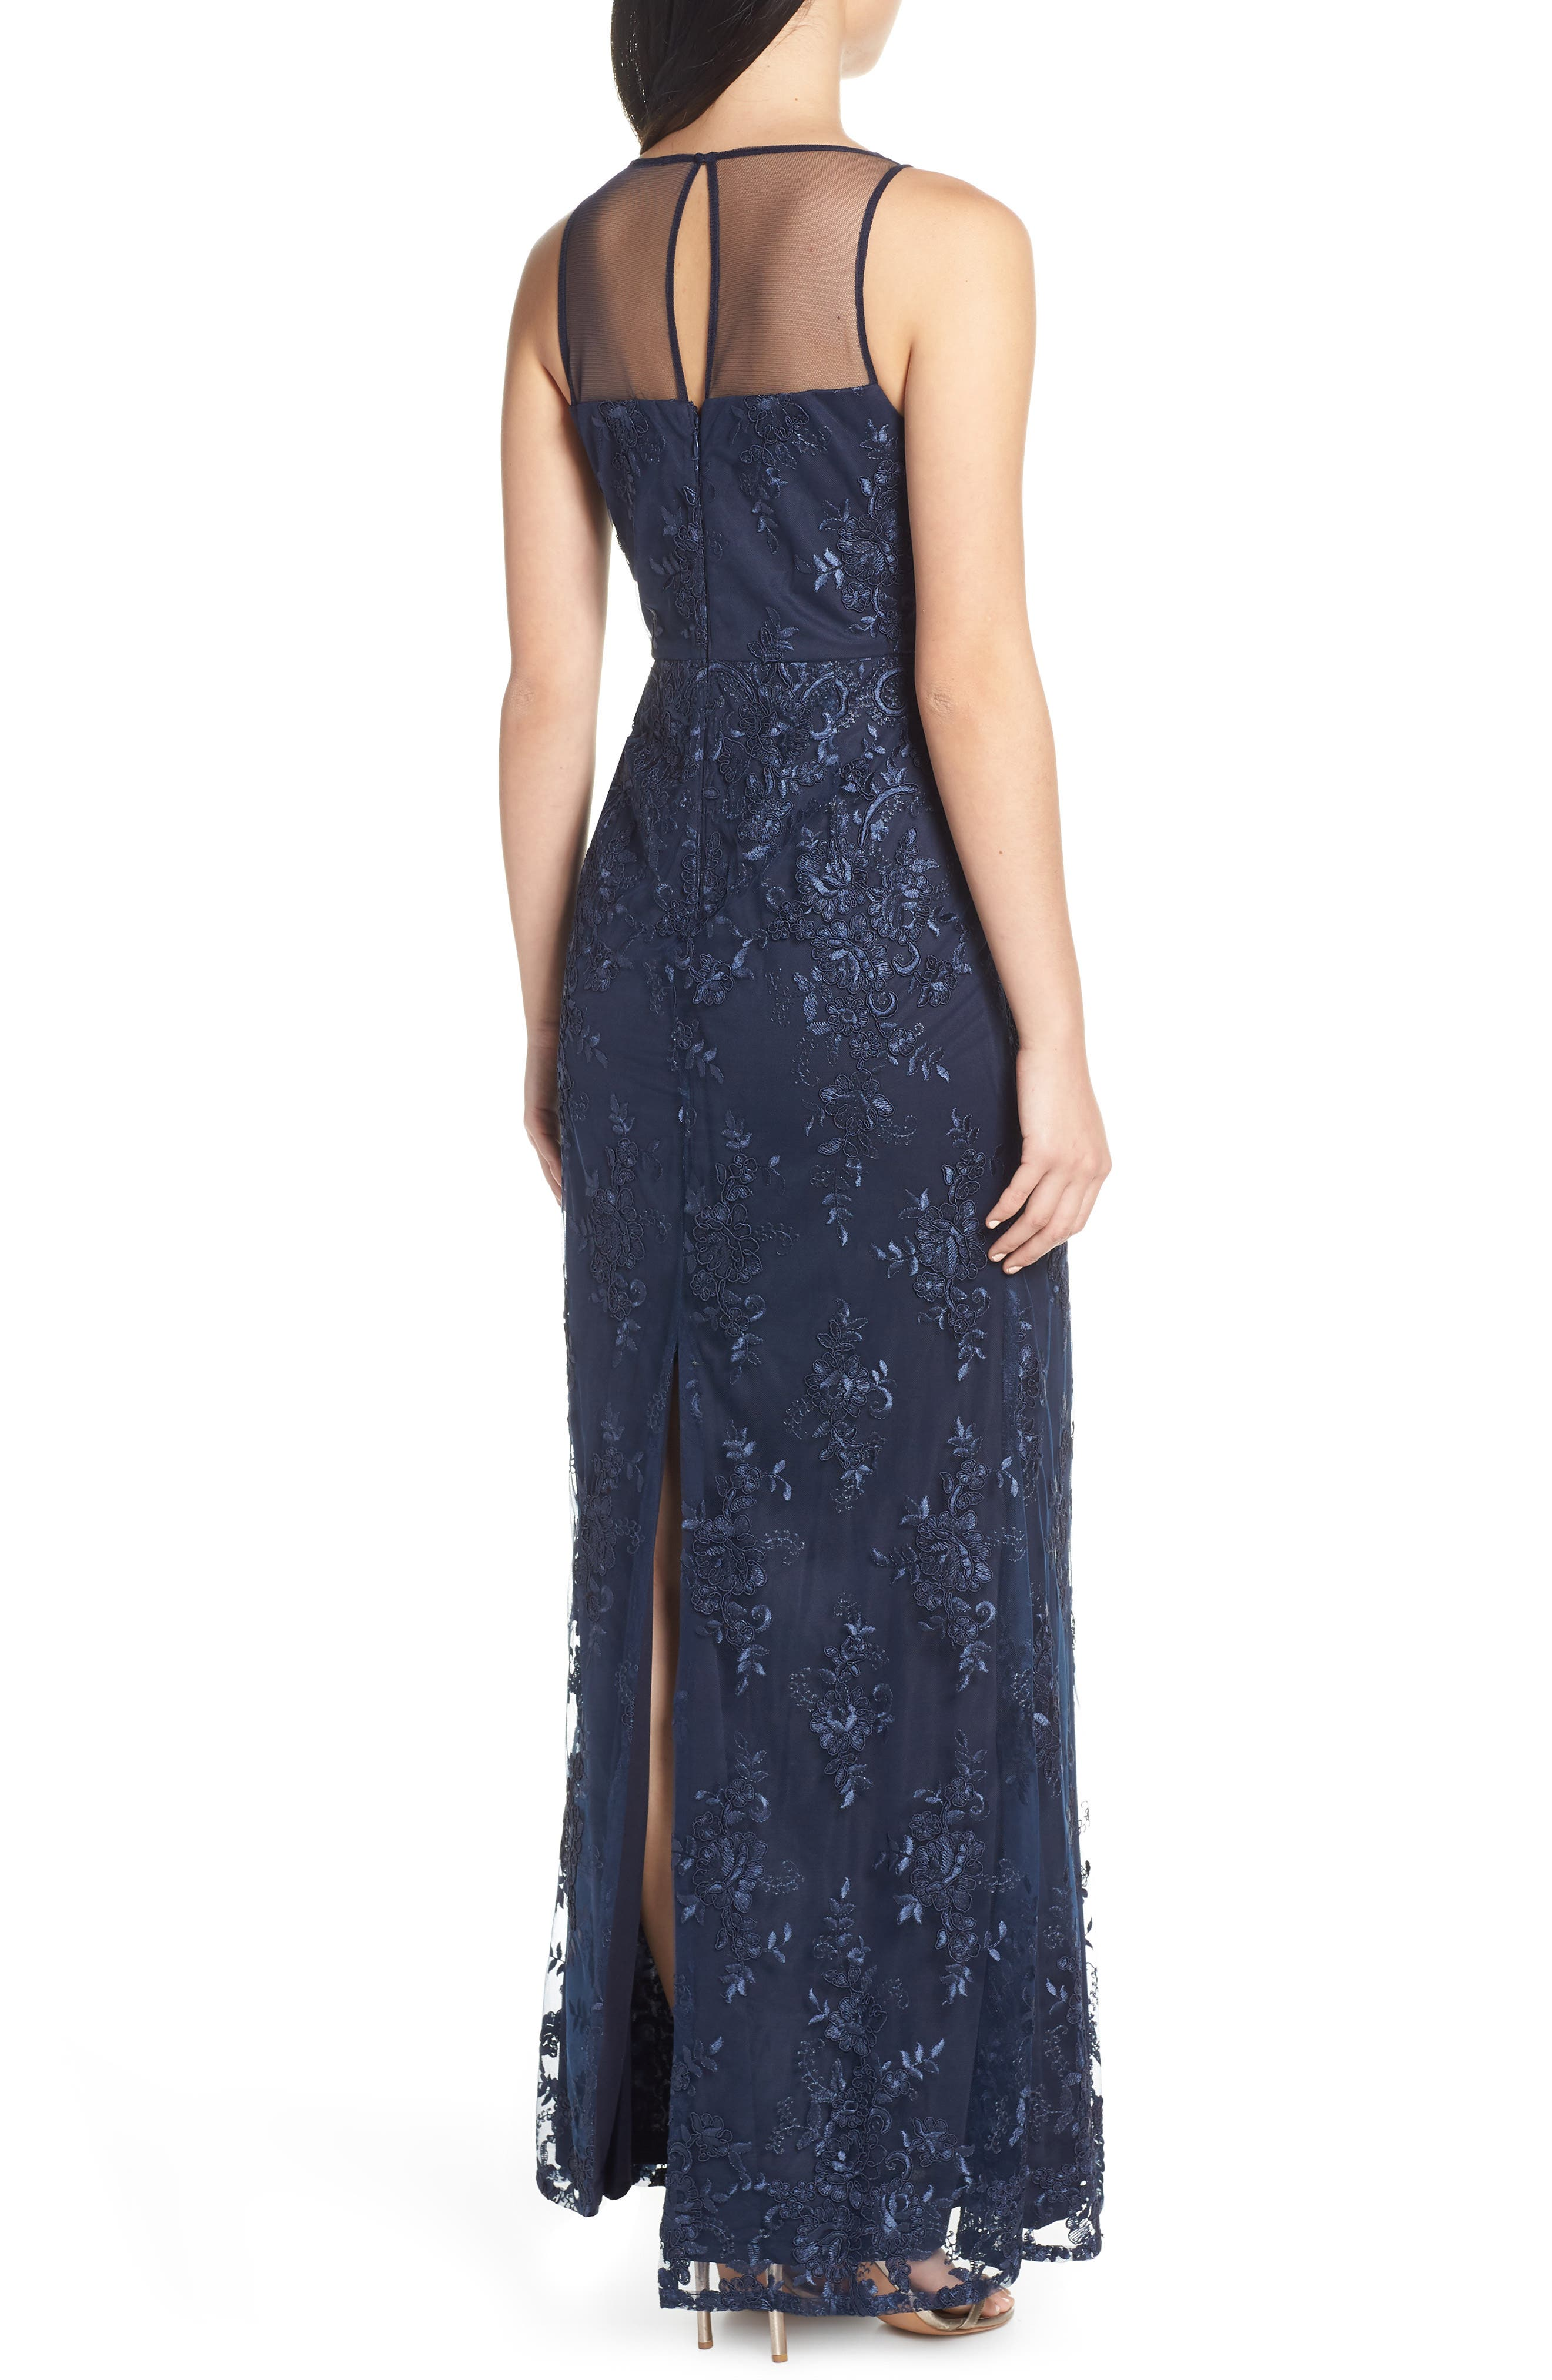 ADRIANNA PAPELL,                             Corded Lace Evening Dress,                             Alternate thumbnail 2, color,                             MIDNIGHT